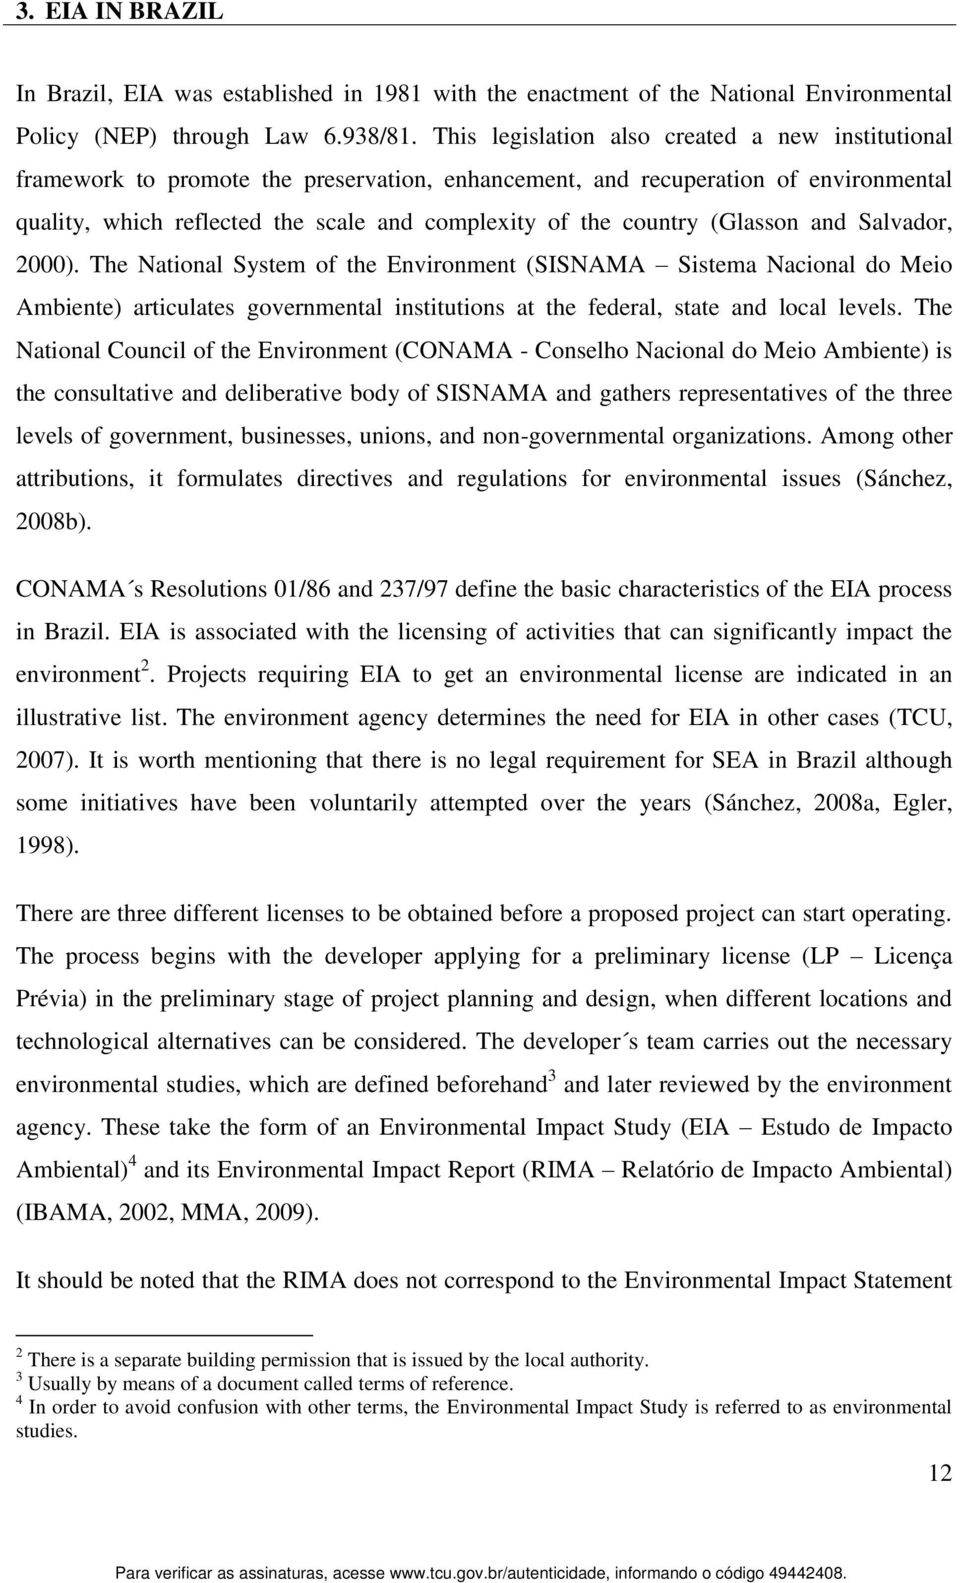 country (Glasson and Salvador, 2000). The National System of the Environment (SISNAMA Sistema Nacional do Meio Ambiente) articulates governmental institutions at the federal, state and local levels.